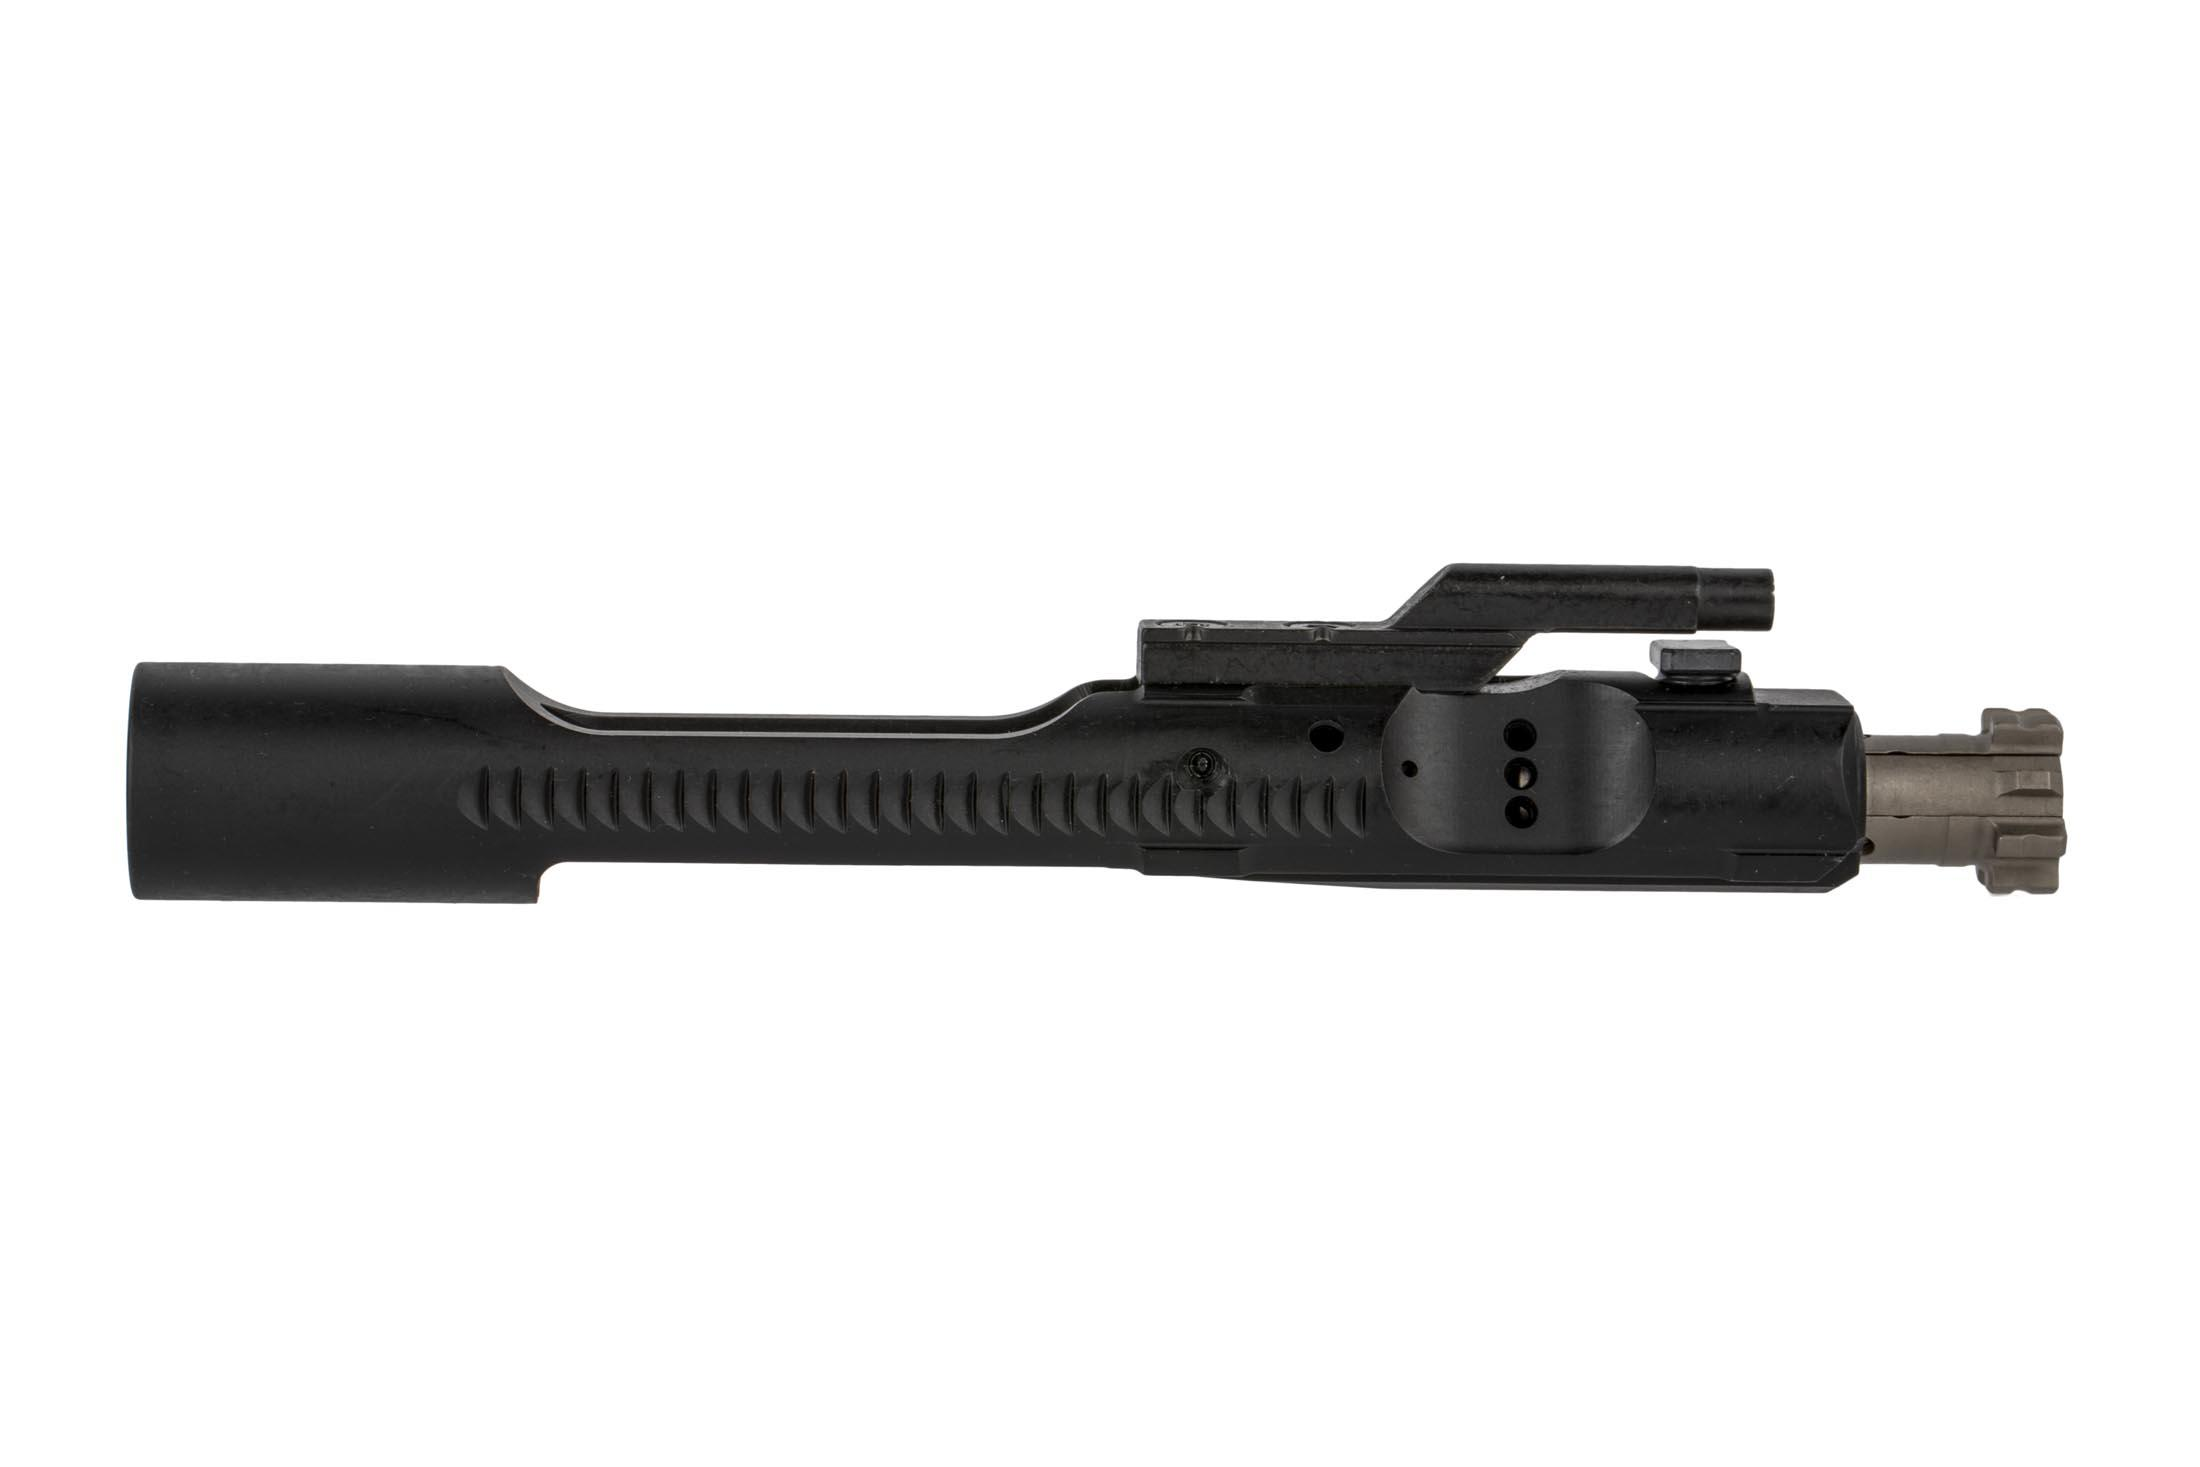 The LMT enhanced bolt carrier group features relief cuts to prevent dirt and debris from clogging the action